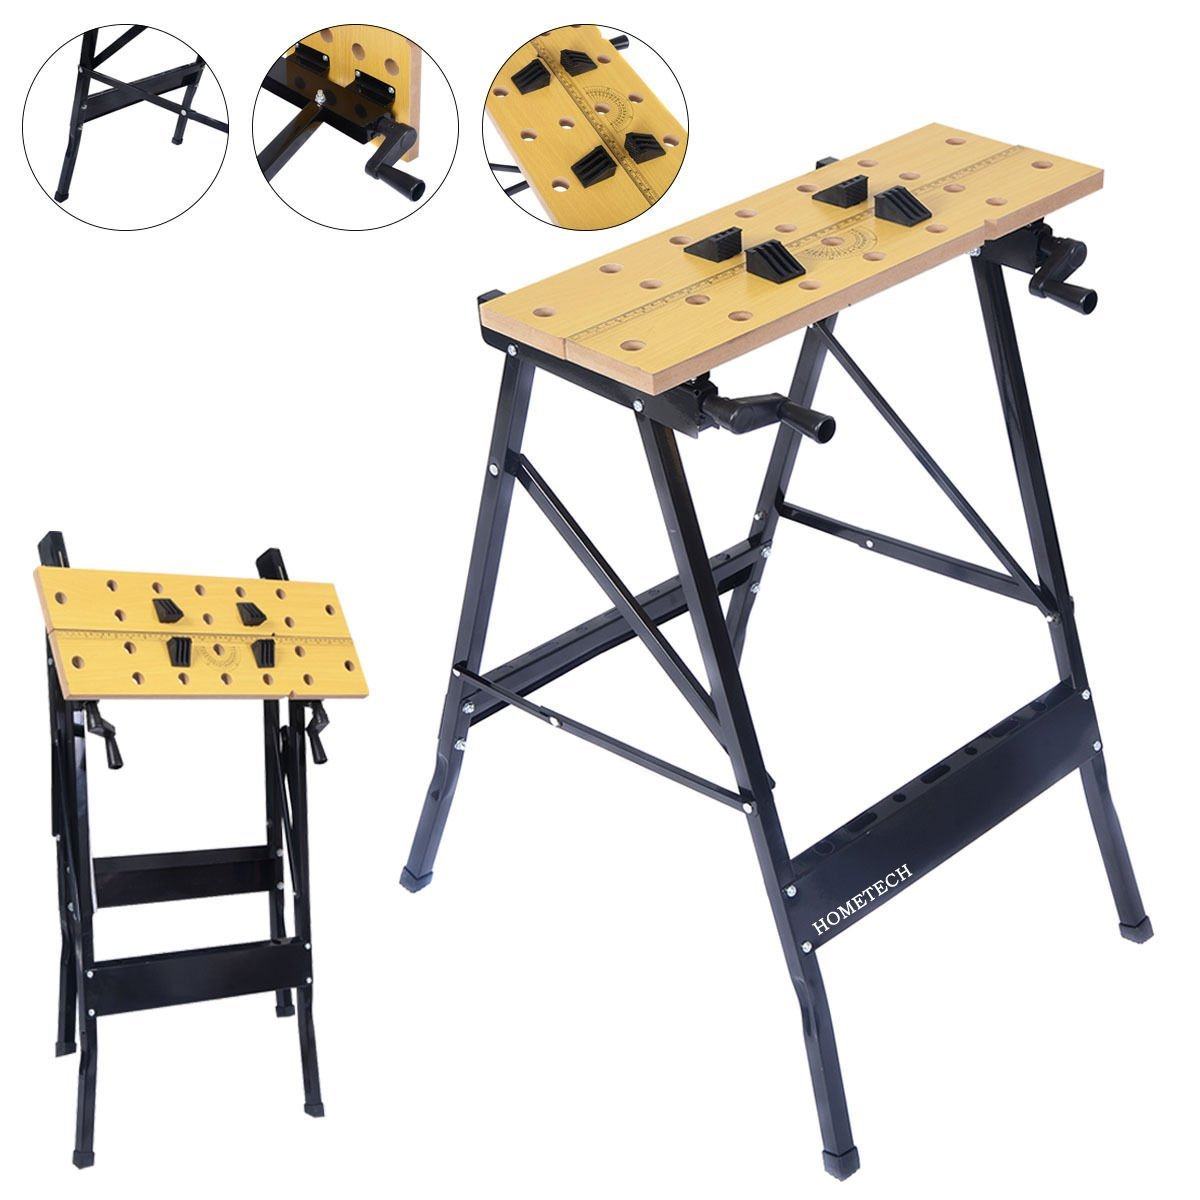 Multi Purpose Steel Wood Folding Work Bench Table Tool Workbench and Sawhorse Compact Clamps Portable Lightweight Fold Storage Garage Repair Workshop Station Clamping Painting Cutting Home Adjustable